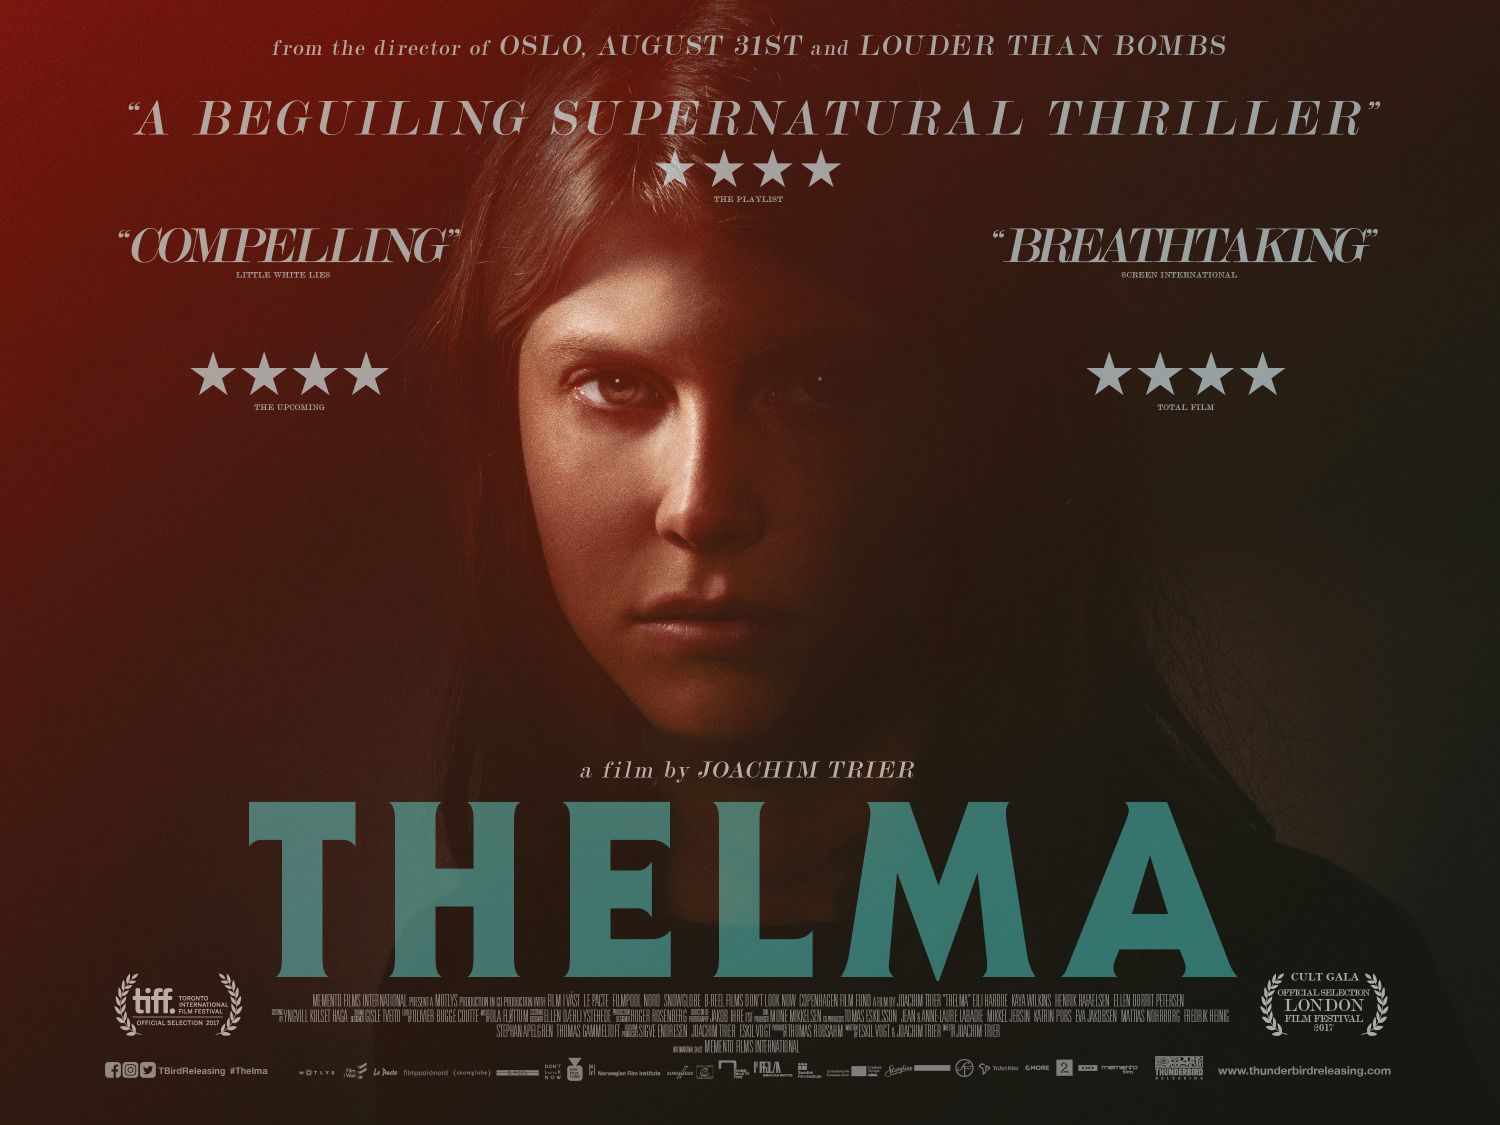 Thelma - film poster 2018